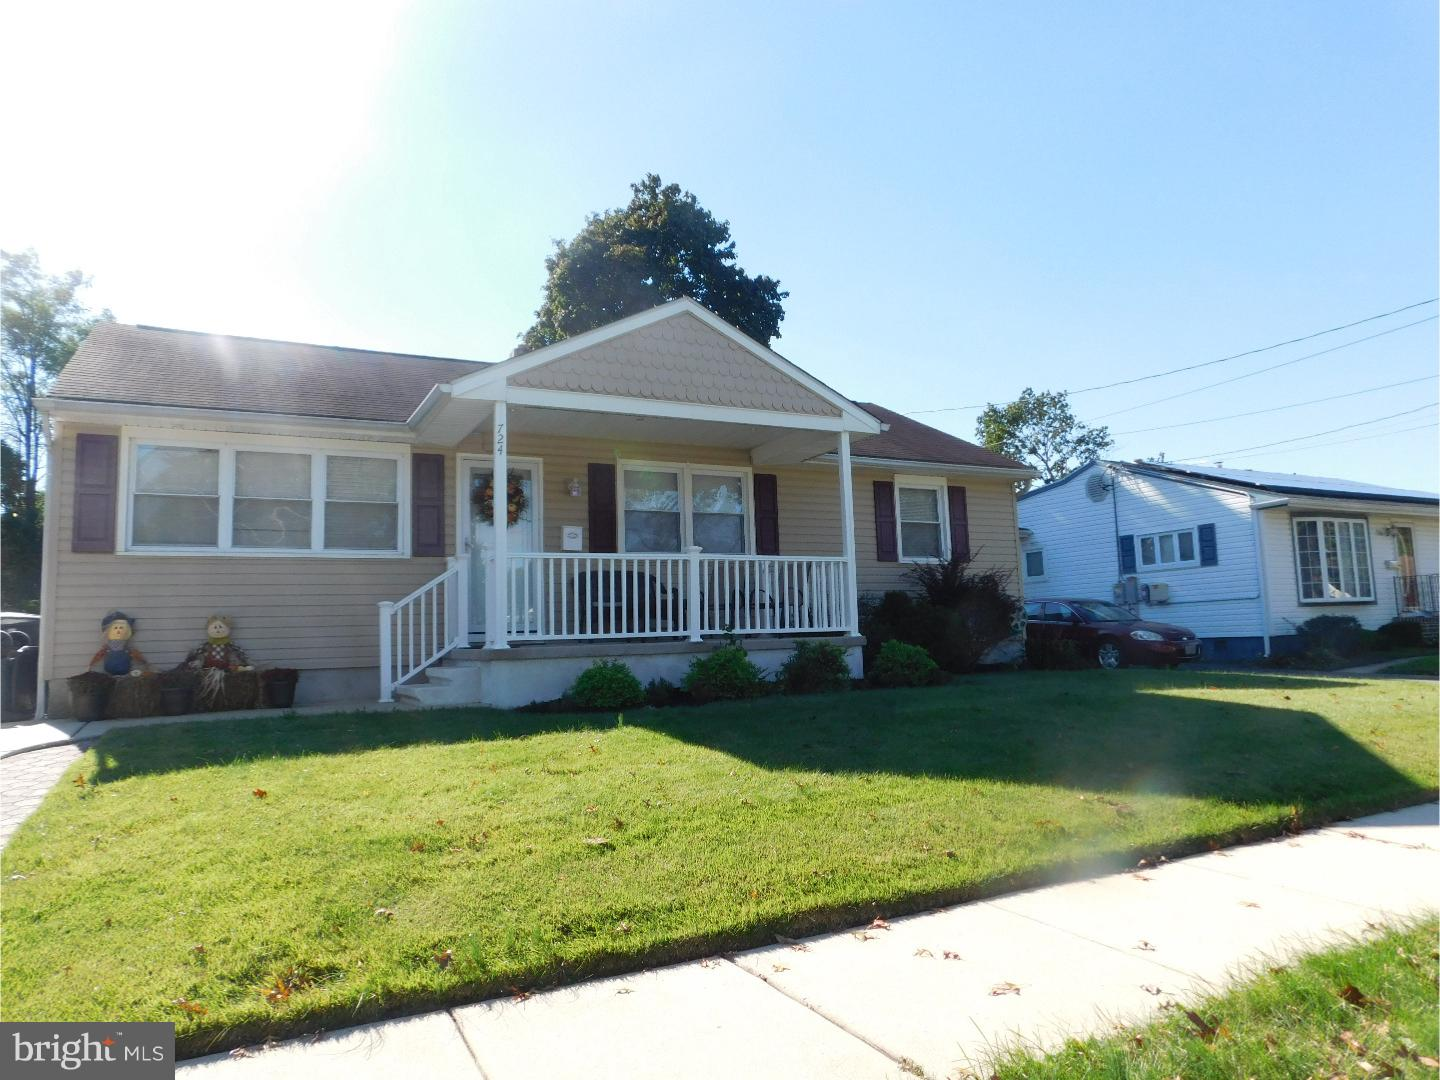 Single Family Home for Sale at 724 W MADISON Avenue Magnolia, New Jersey 08049 United States